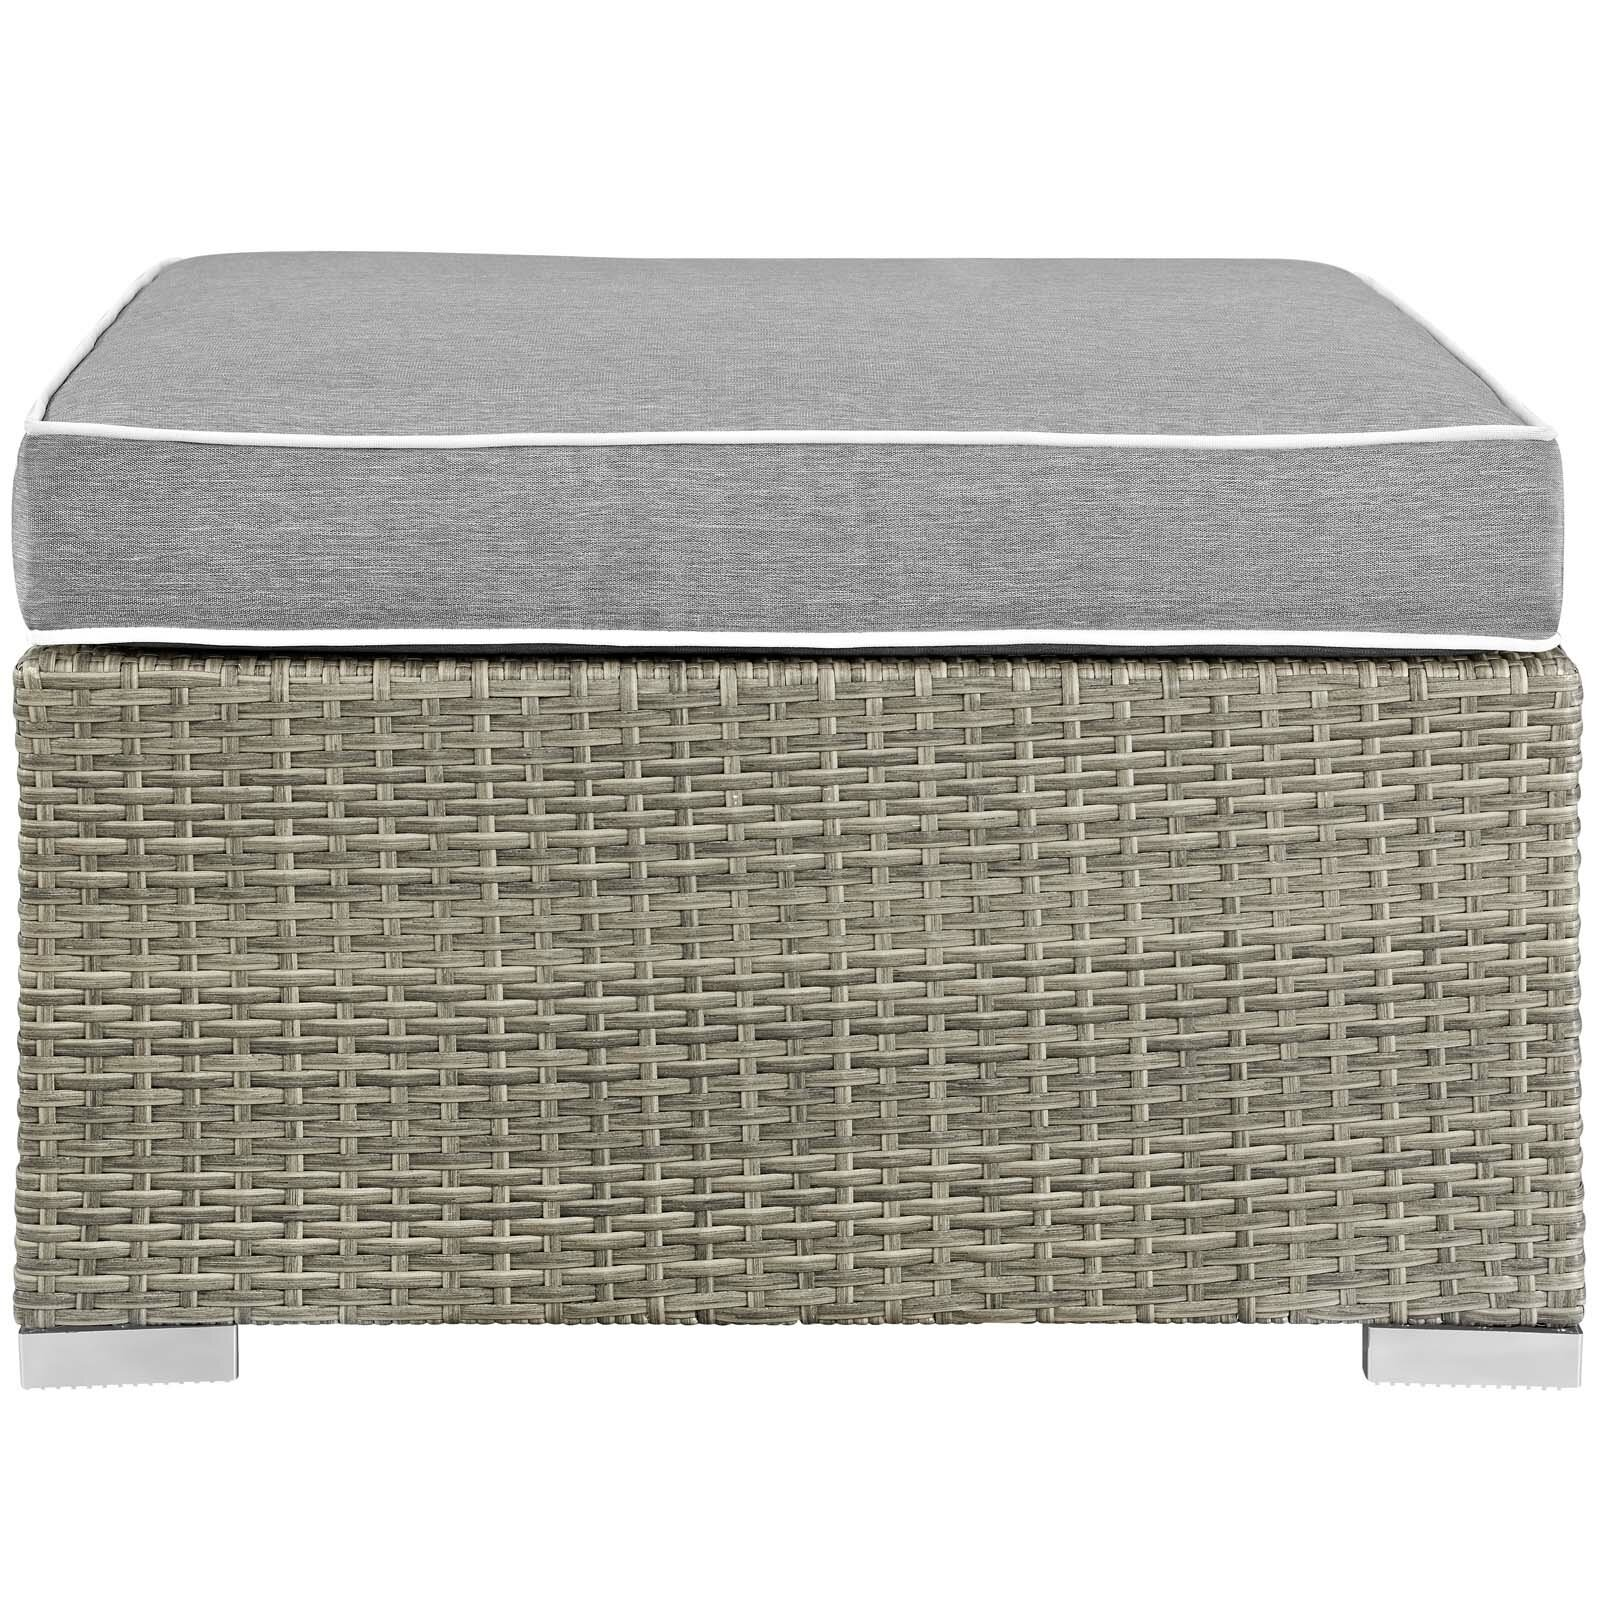 Superbe Highland Dunes Heinrich Outdoor Upholstered Fabric Patio Ottoman With  Cushion | Wayfair